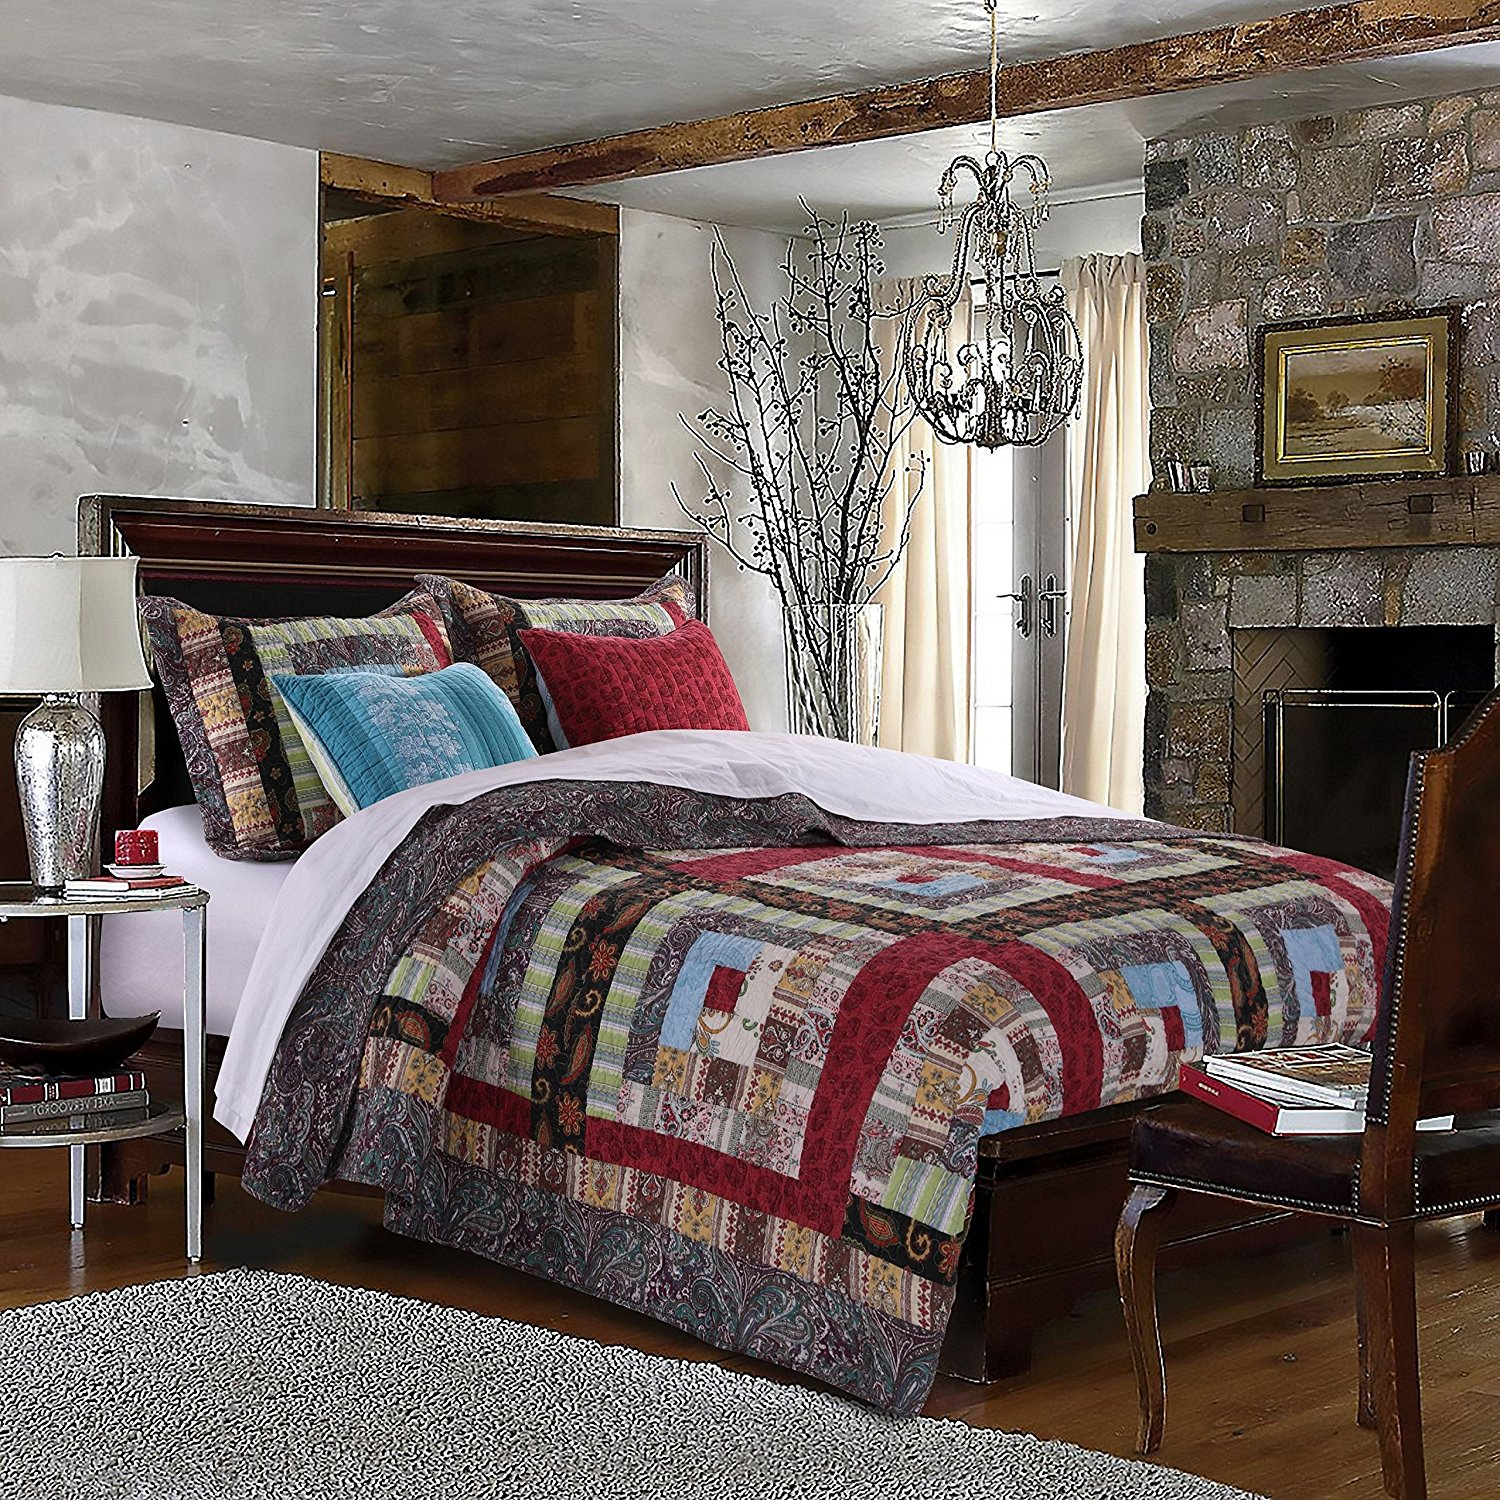 5 Piece Mulit Color Patchwork King Size Quilt Set, Red Blue Rustic Square Medallion Bedding, Floral Flowers Boho Chic Patch Work, Log Cabin Cottage, Cotton Reversible, Cotton, Polyester